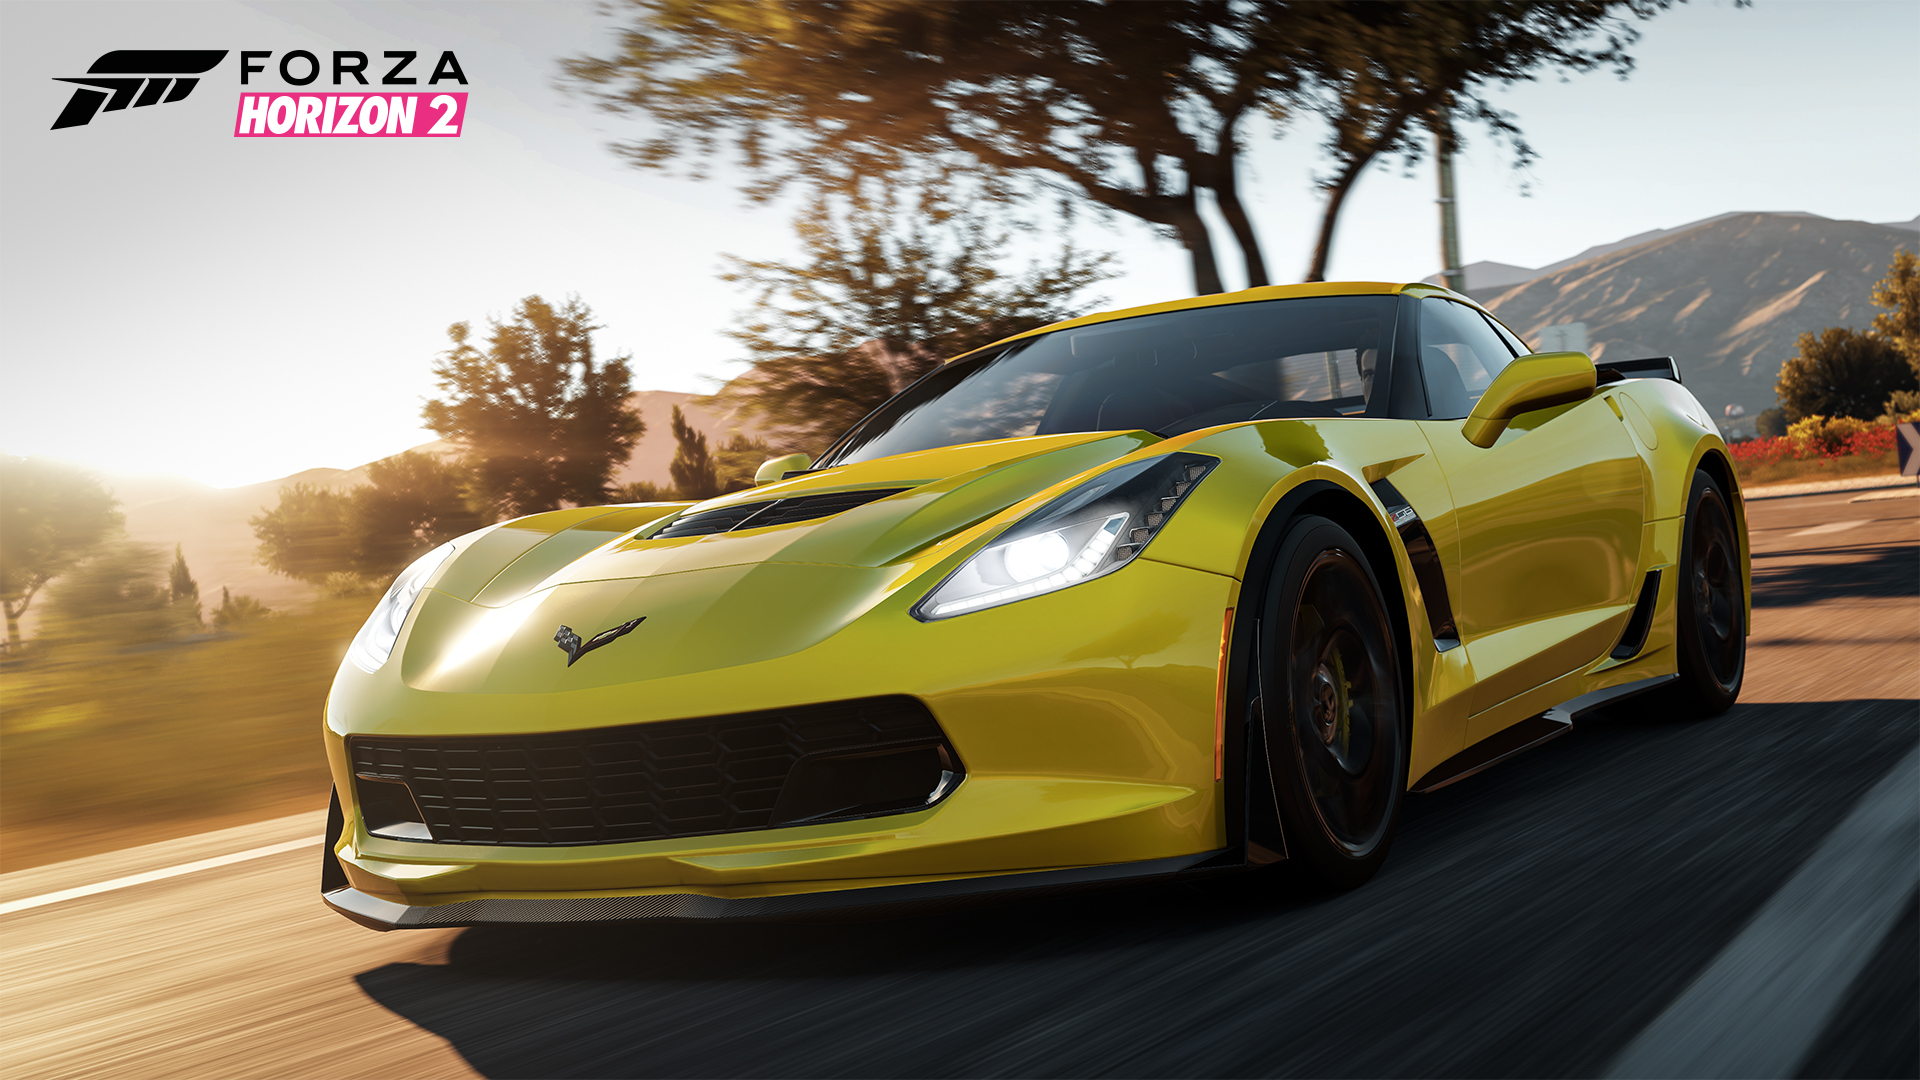 Alpinestars Car Pack Now Out For Xbox One Version Of Forza Horizon 2